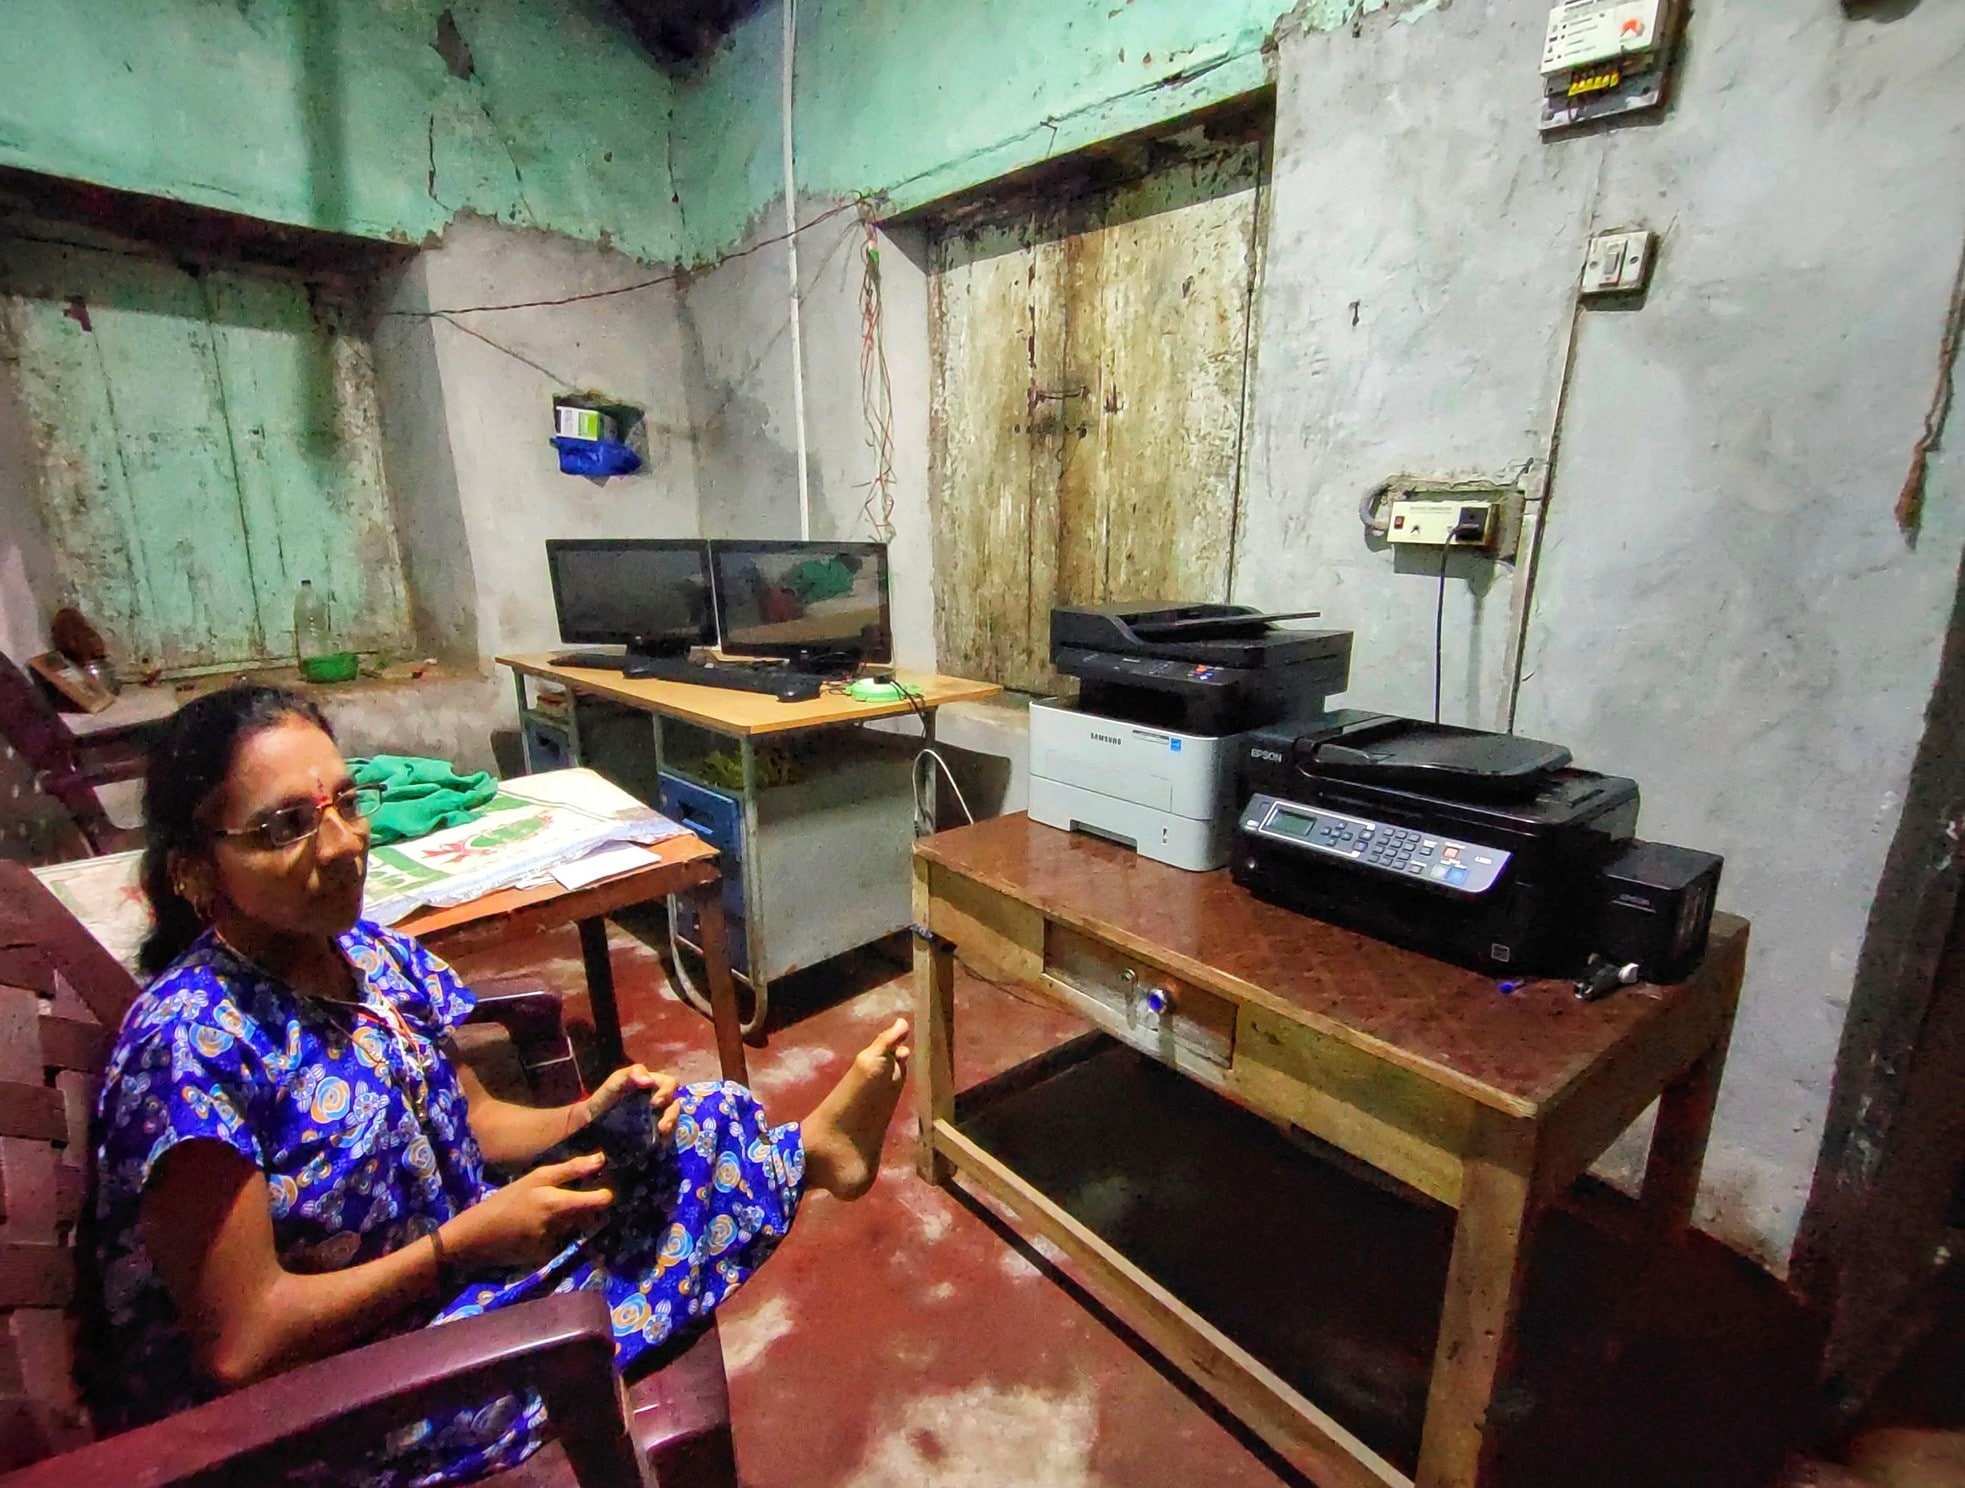 Sridevi Melavanki is specially abled person from Bailhongal. She opted SELCO Solar powered photocopy machine for her livelihood